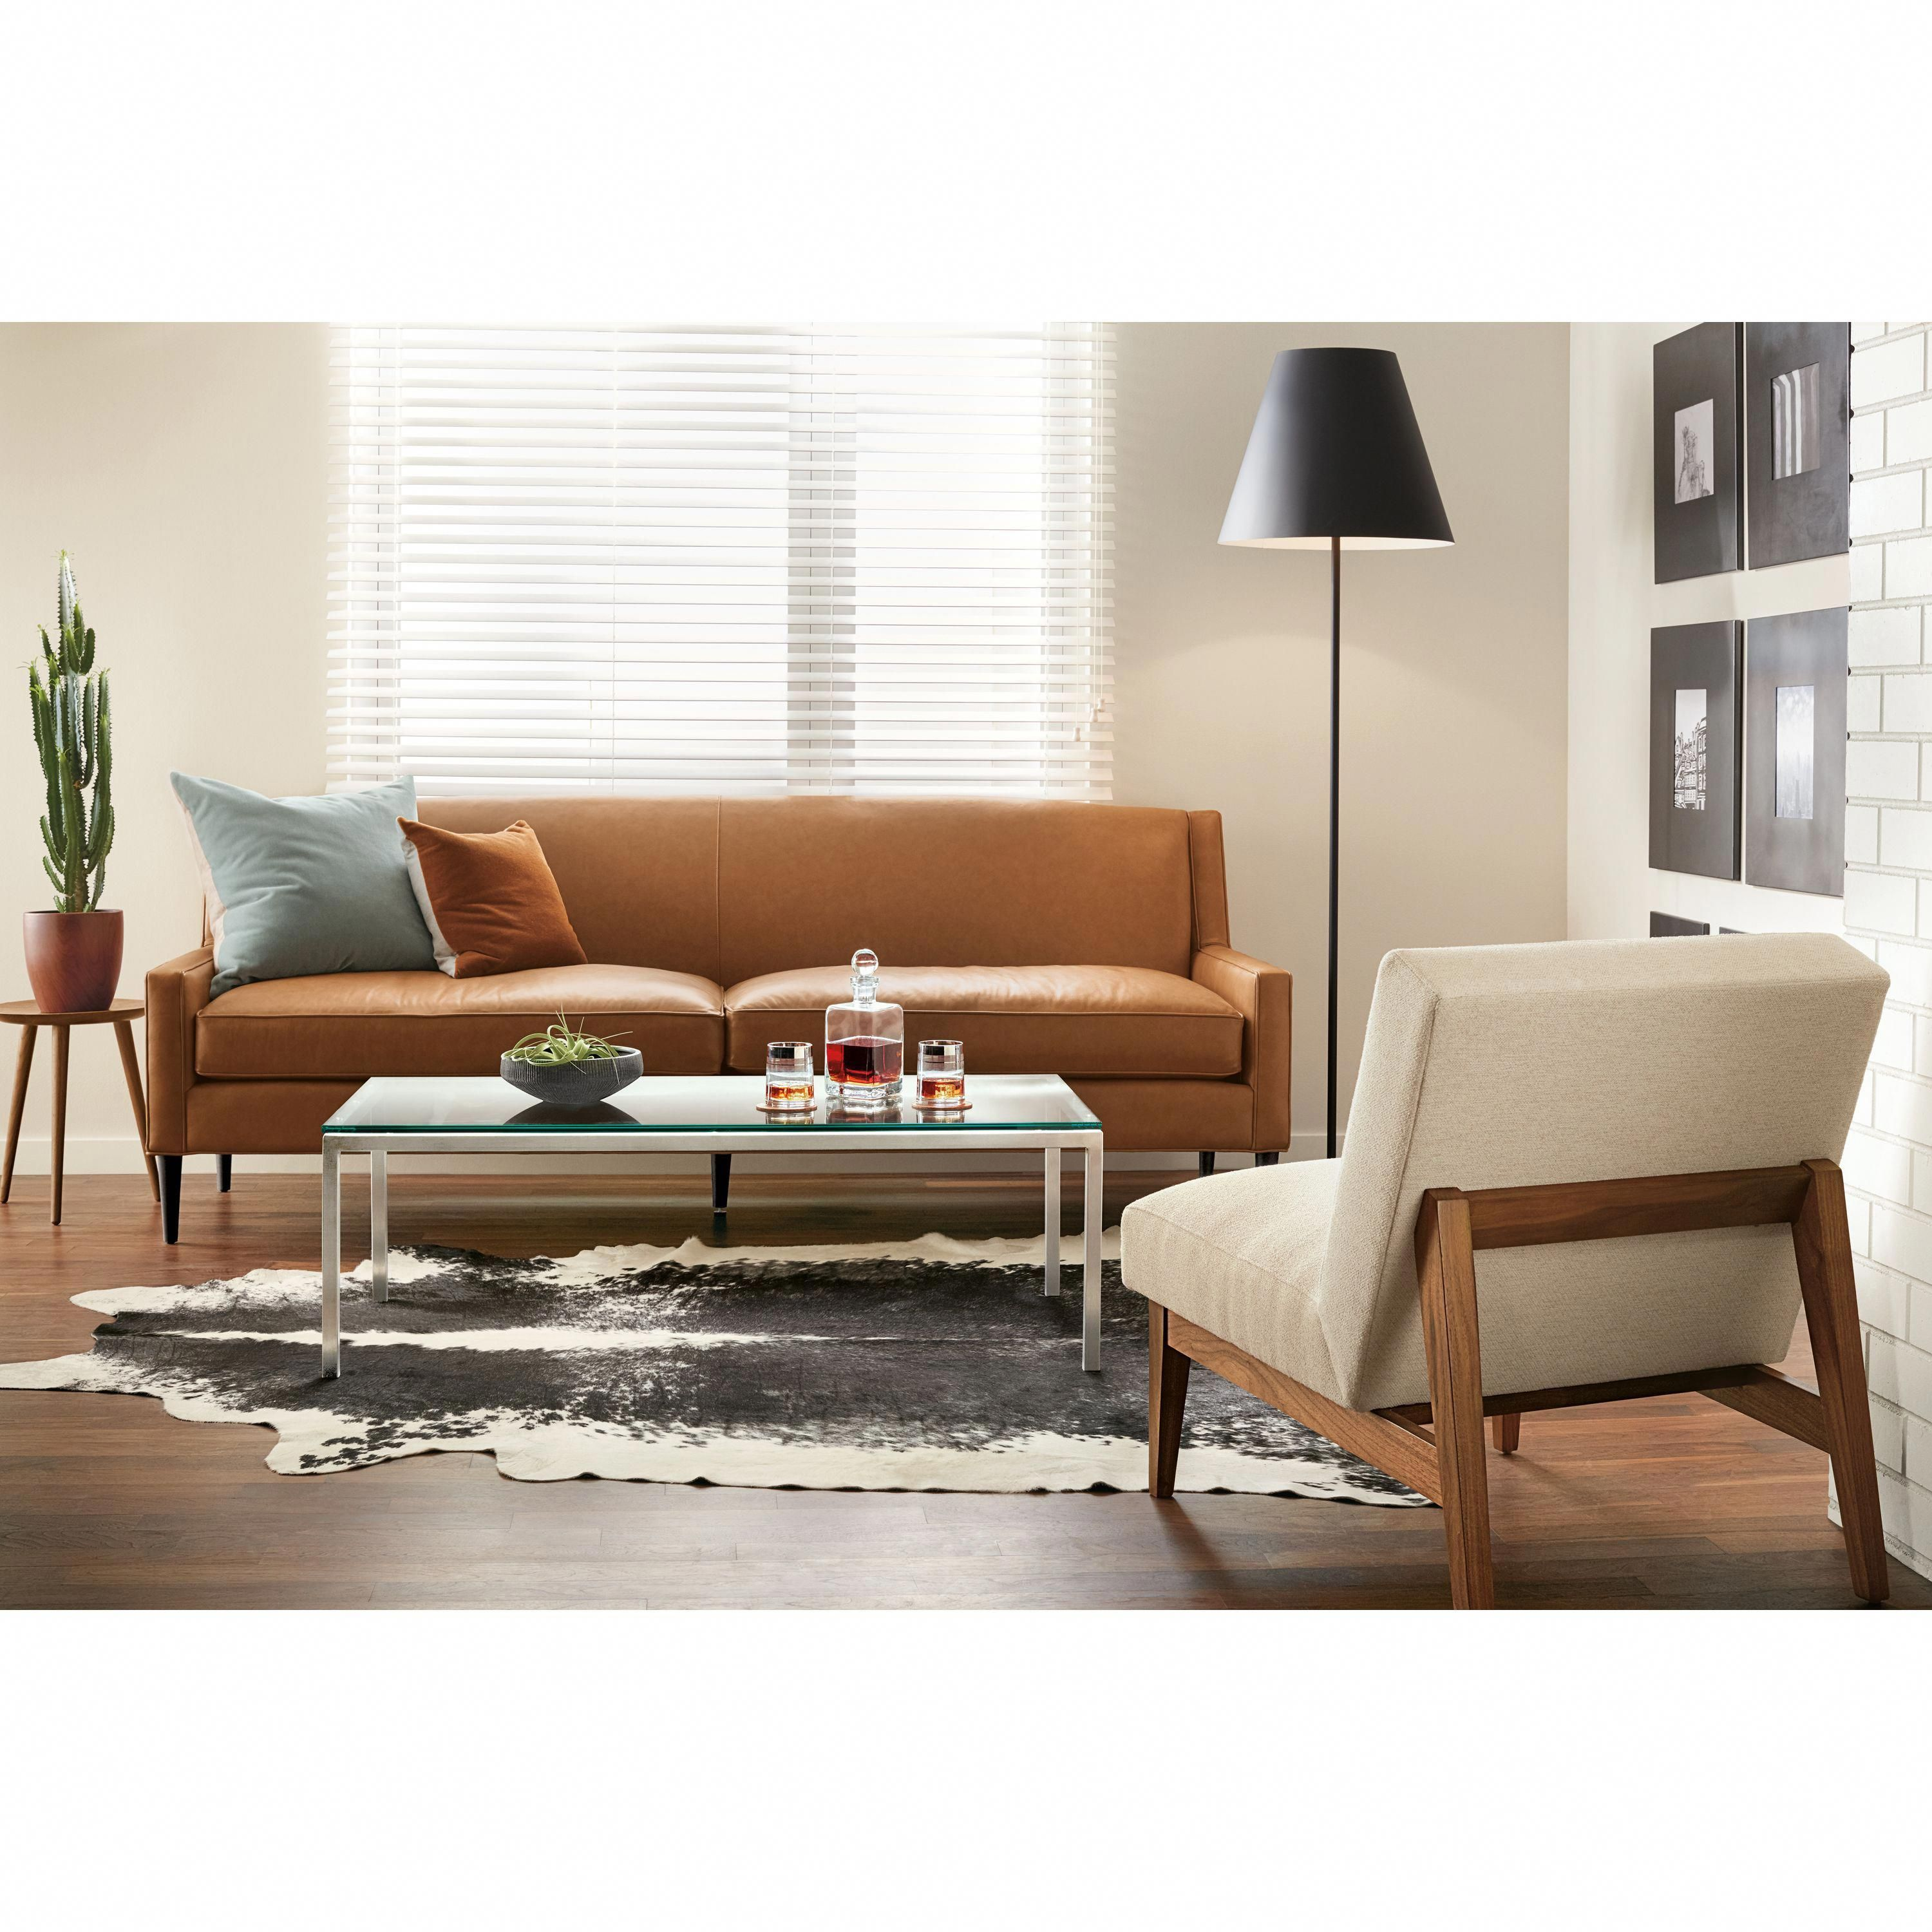 Room Board Braden Leather Sofas Housestyles